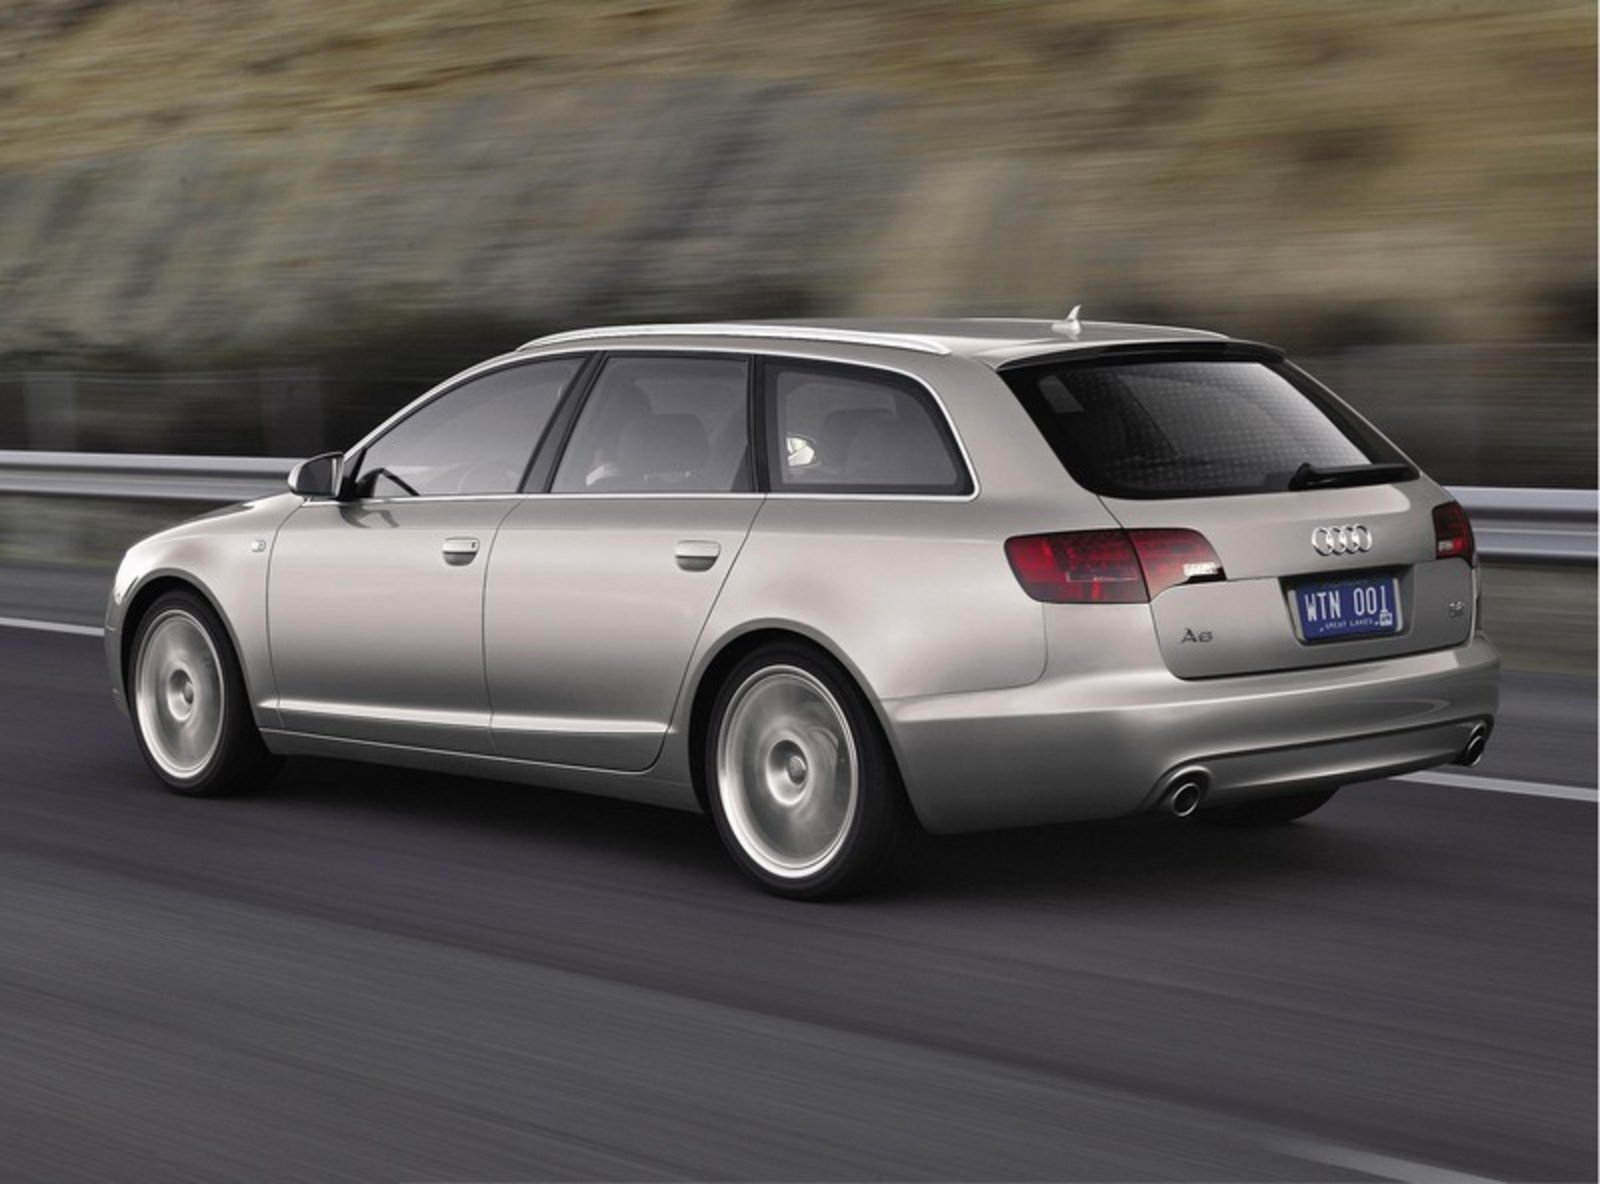 2006 audi a6 wagon picture 45294 car review top speed. Black Bedroom Furniture Sets. Home Design Ideas